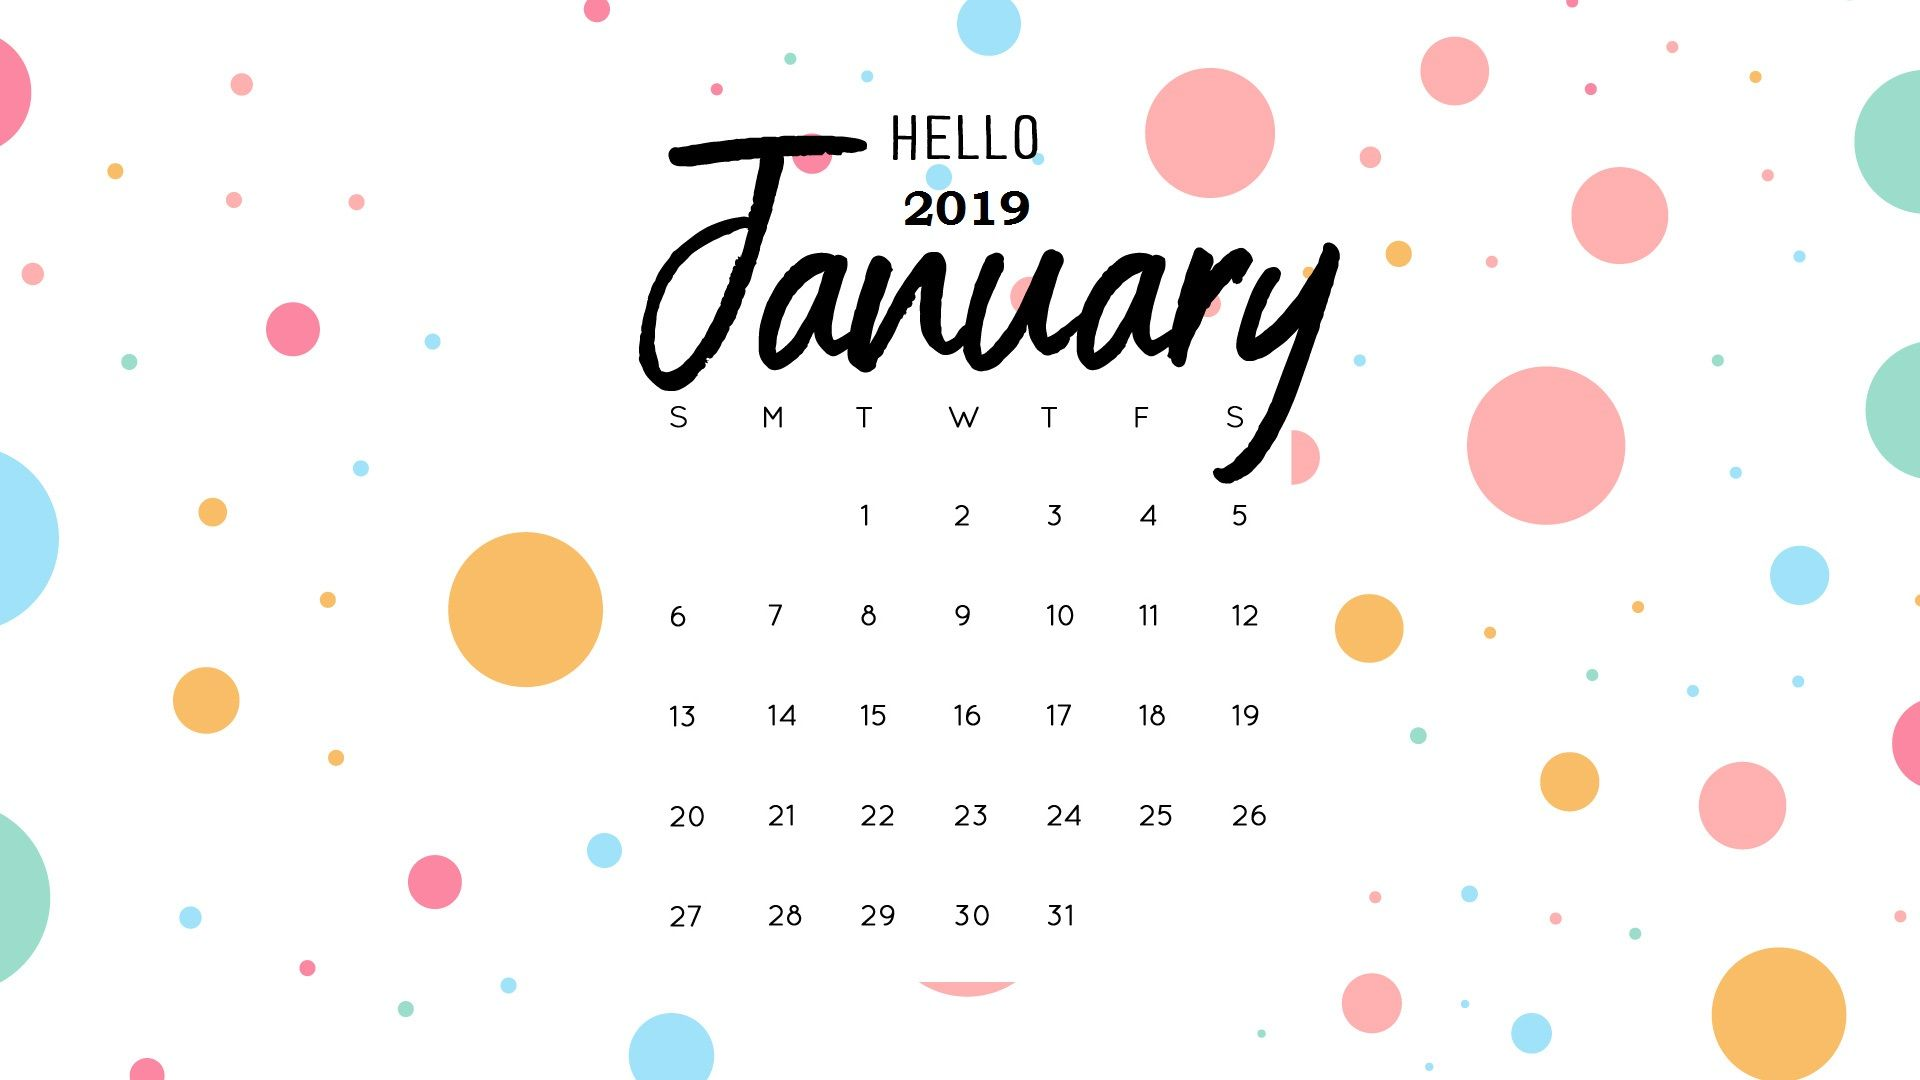 Hello January 2019 Calendar Wallpaper Monthly Calendar Templates 1920x1080